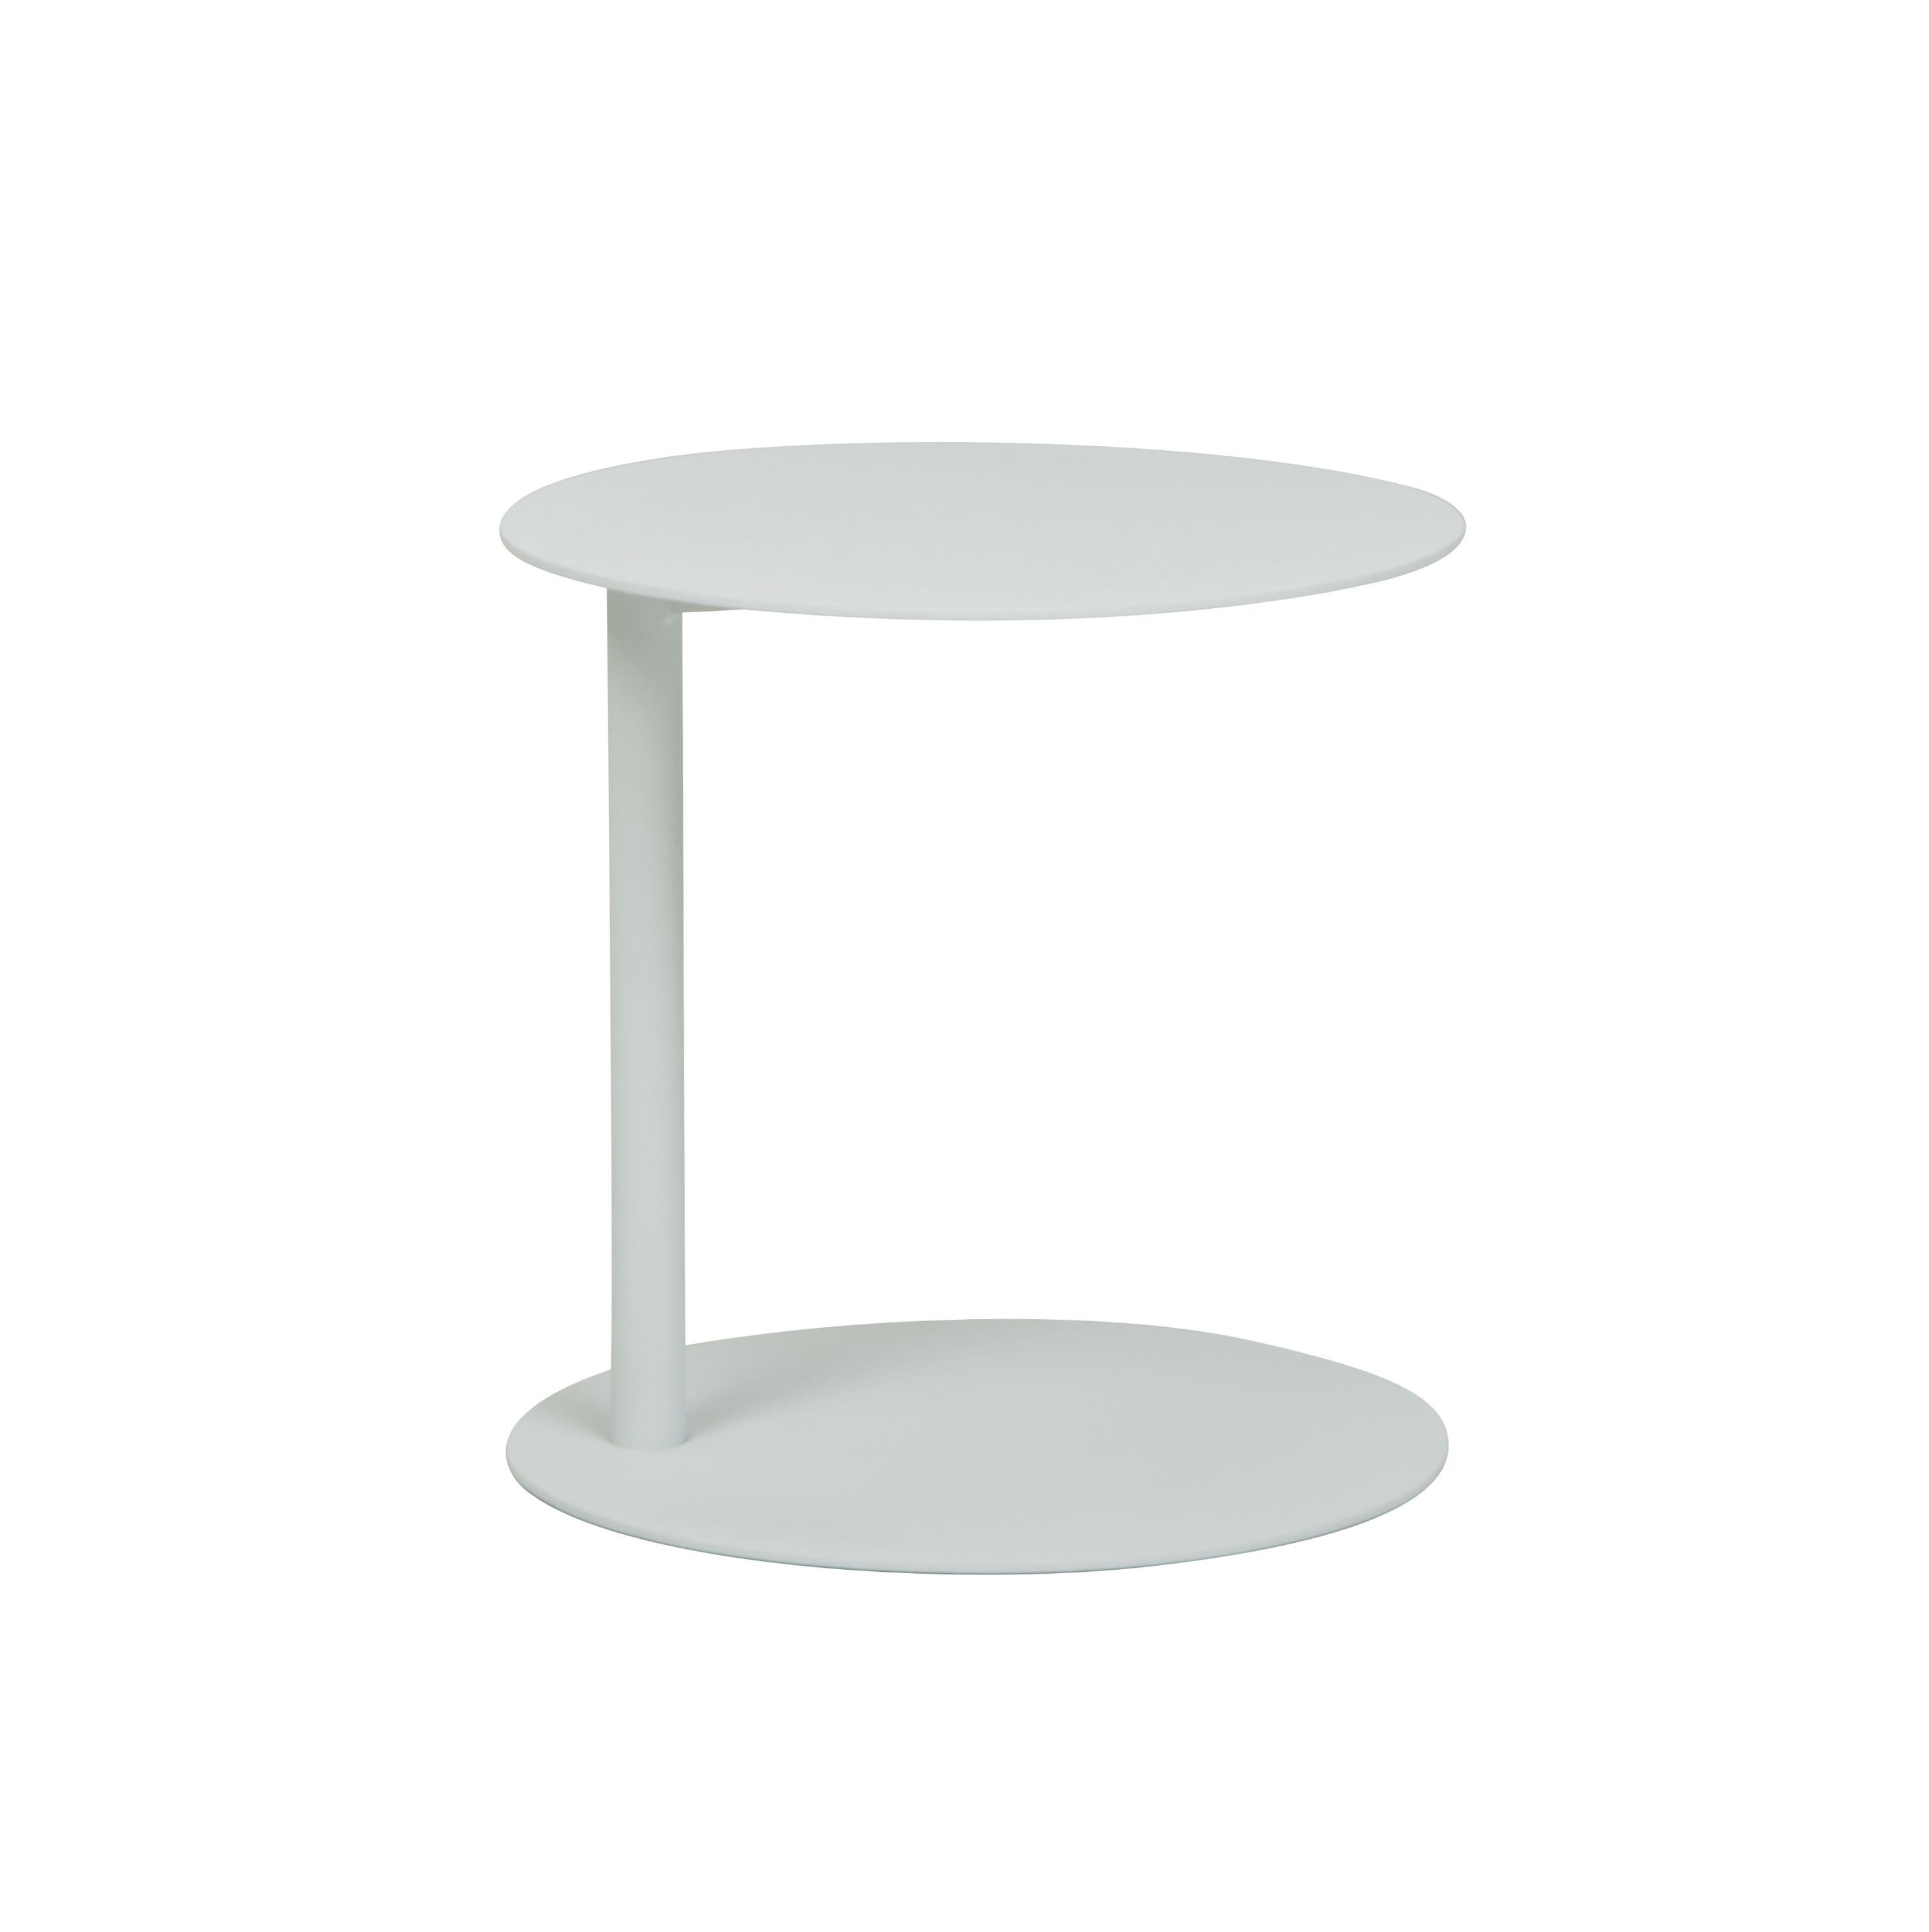 Furniture Hero-Images Coffee-Side-Tables-and-Trolleys aperto-ali-round-side-table-03